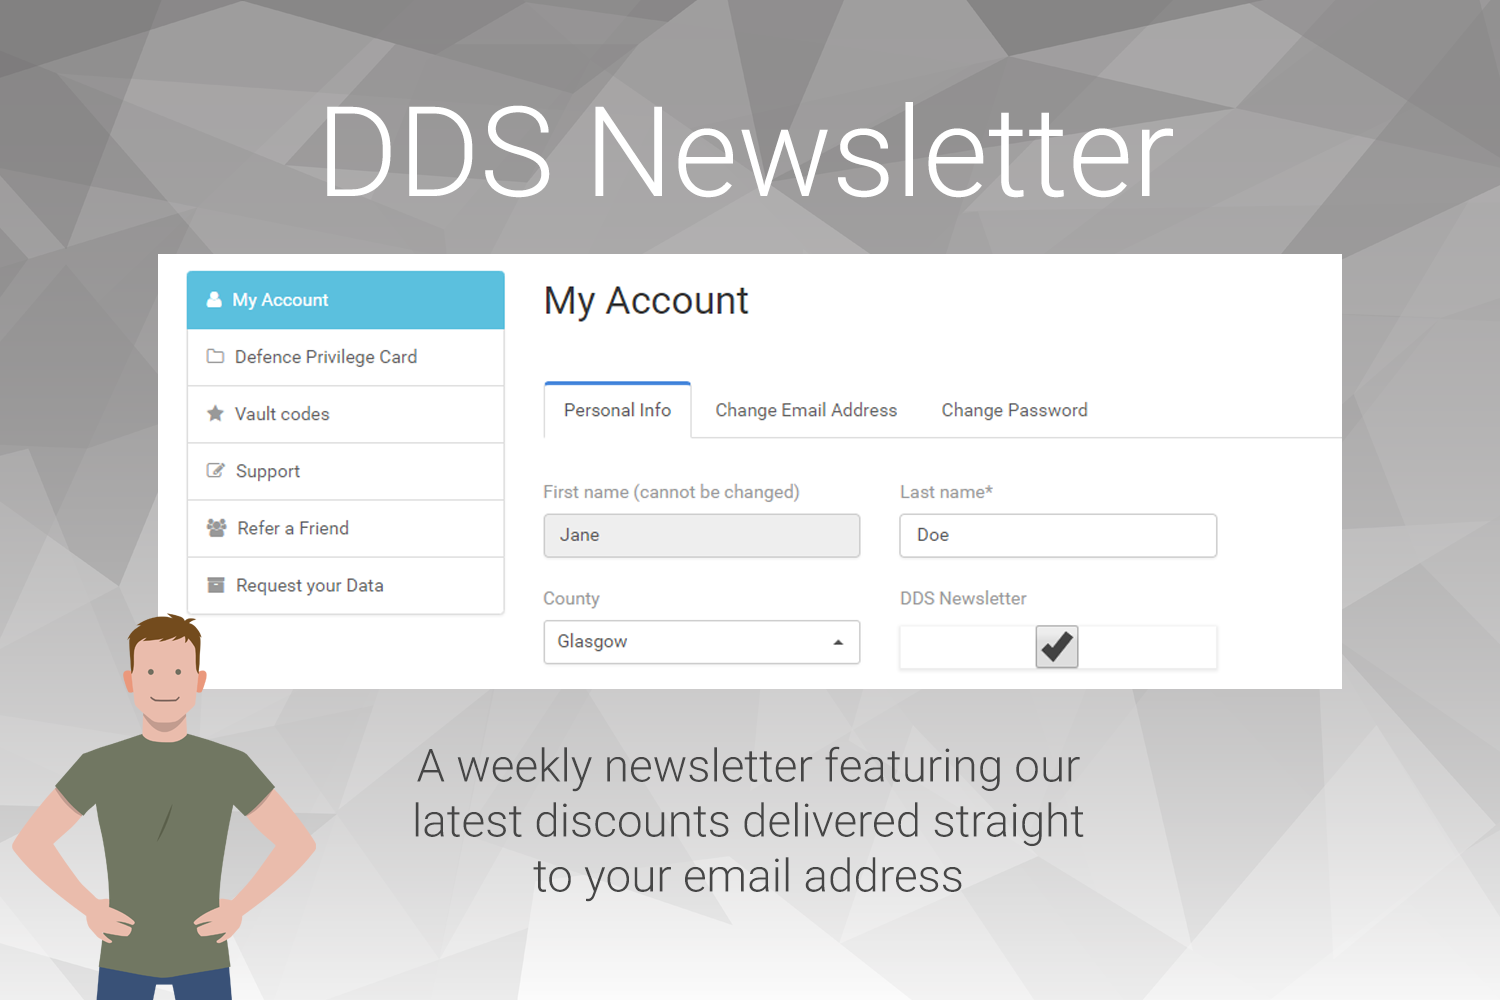 The DDS Newsletter